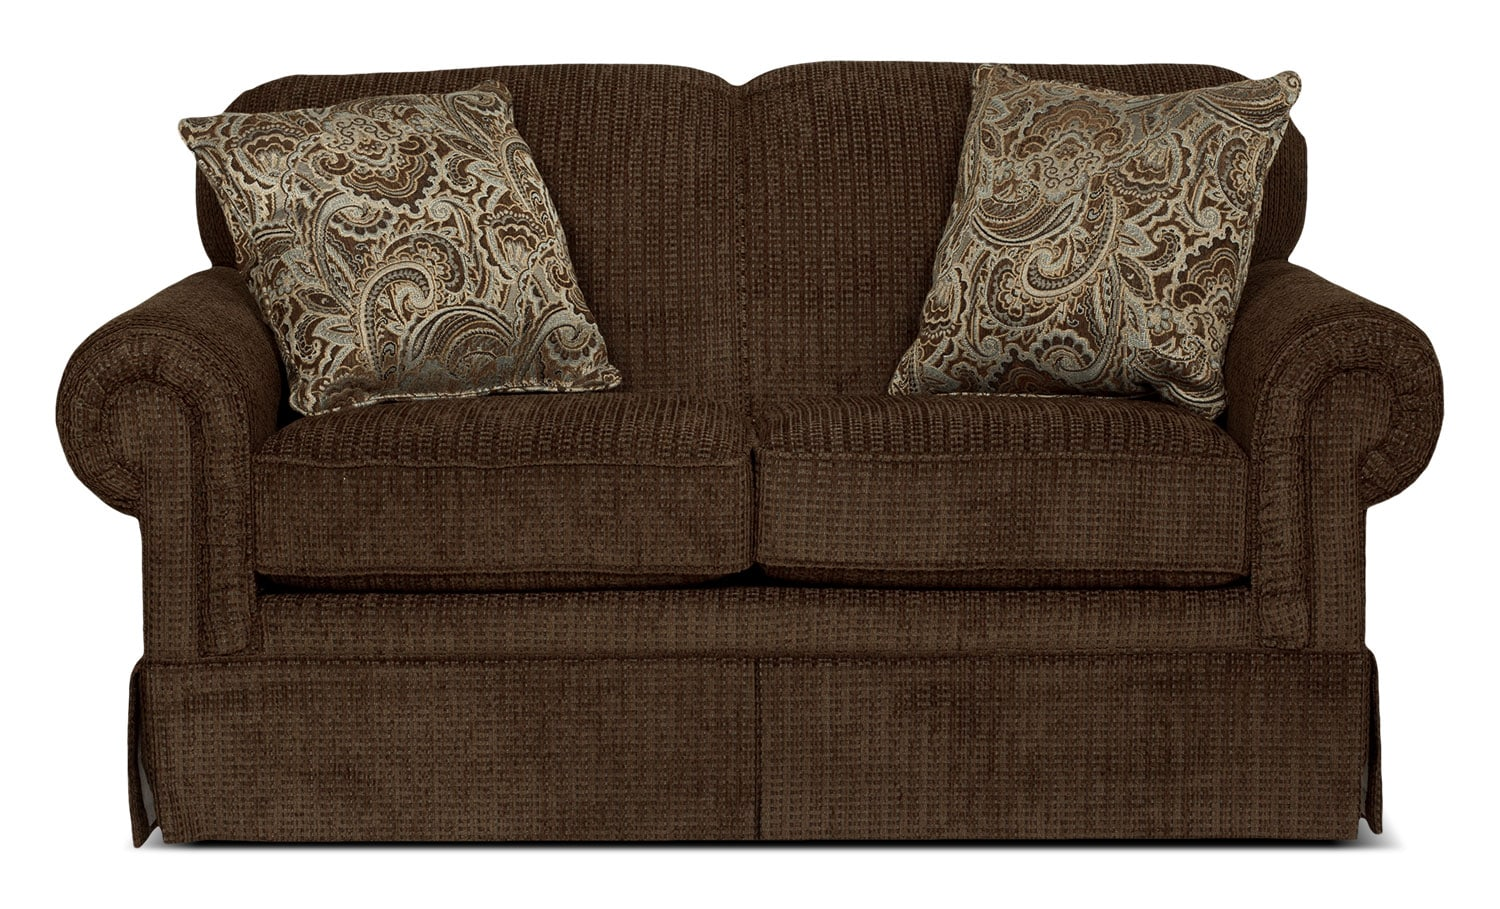 Living Room Furniture - Beacon Gliding Reclining Loveseat - Cocoa